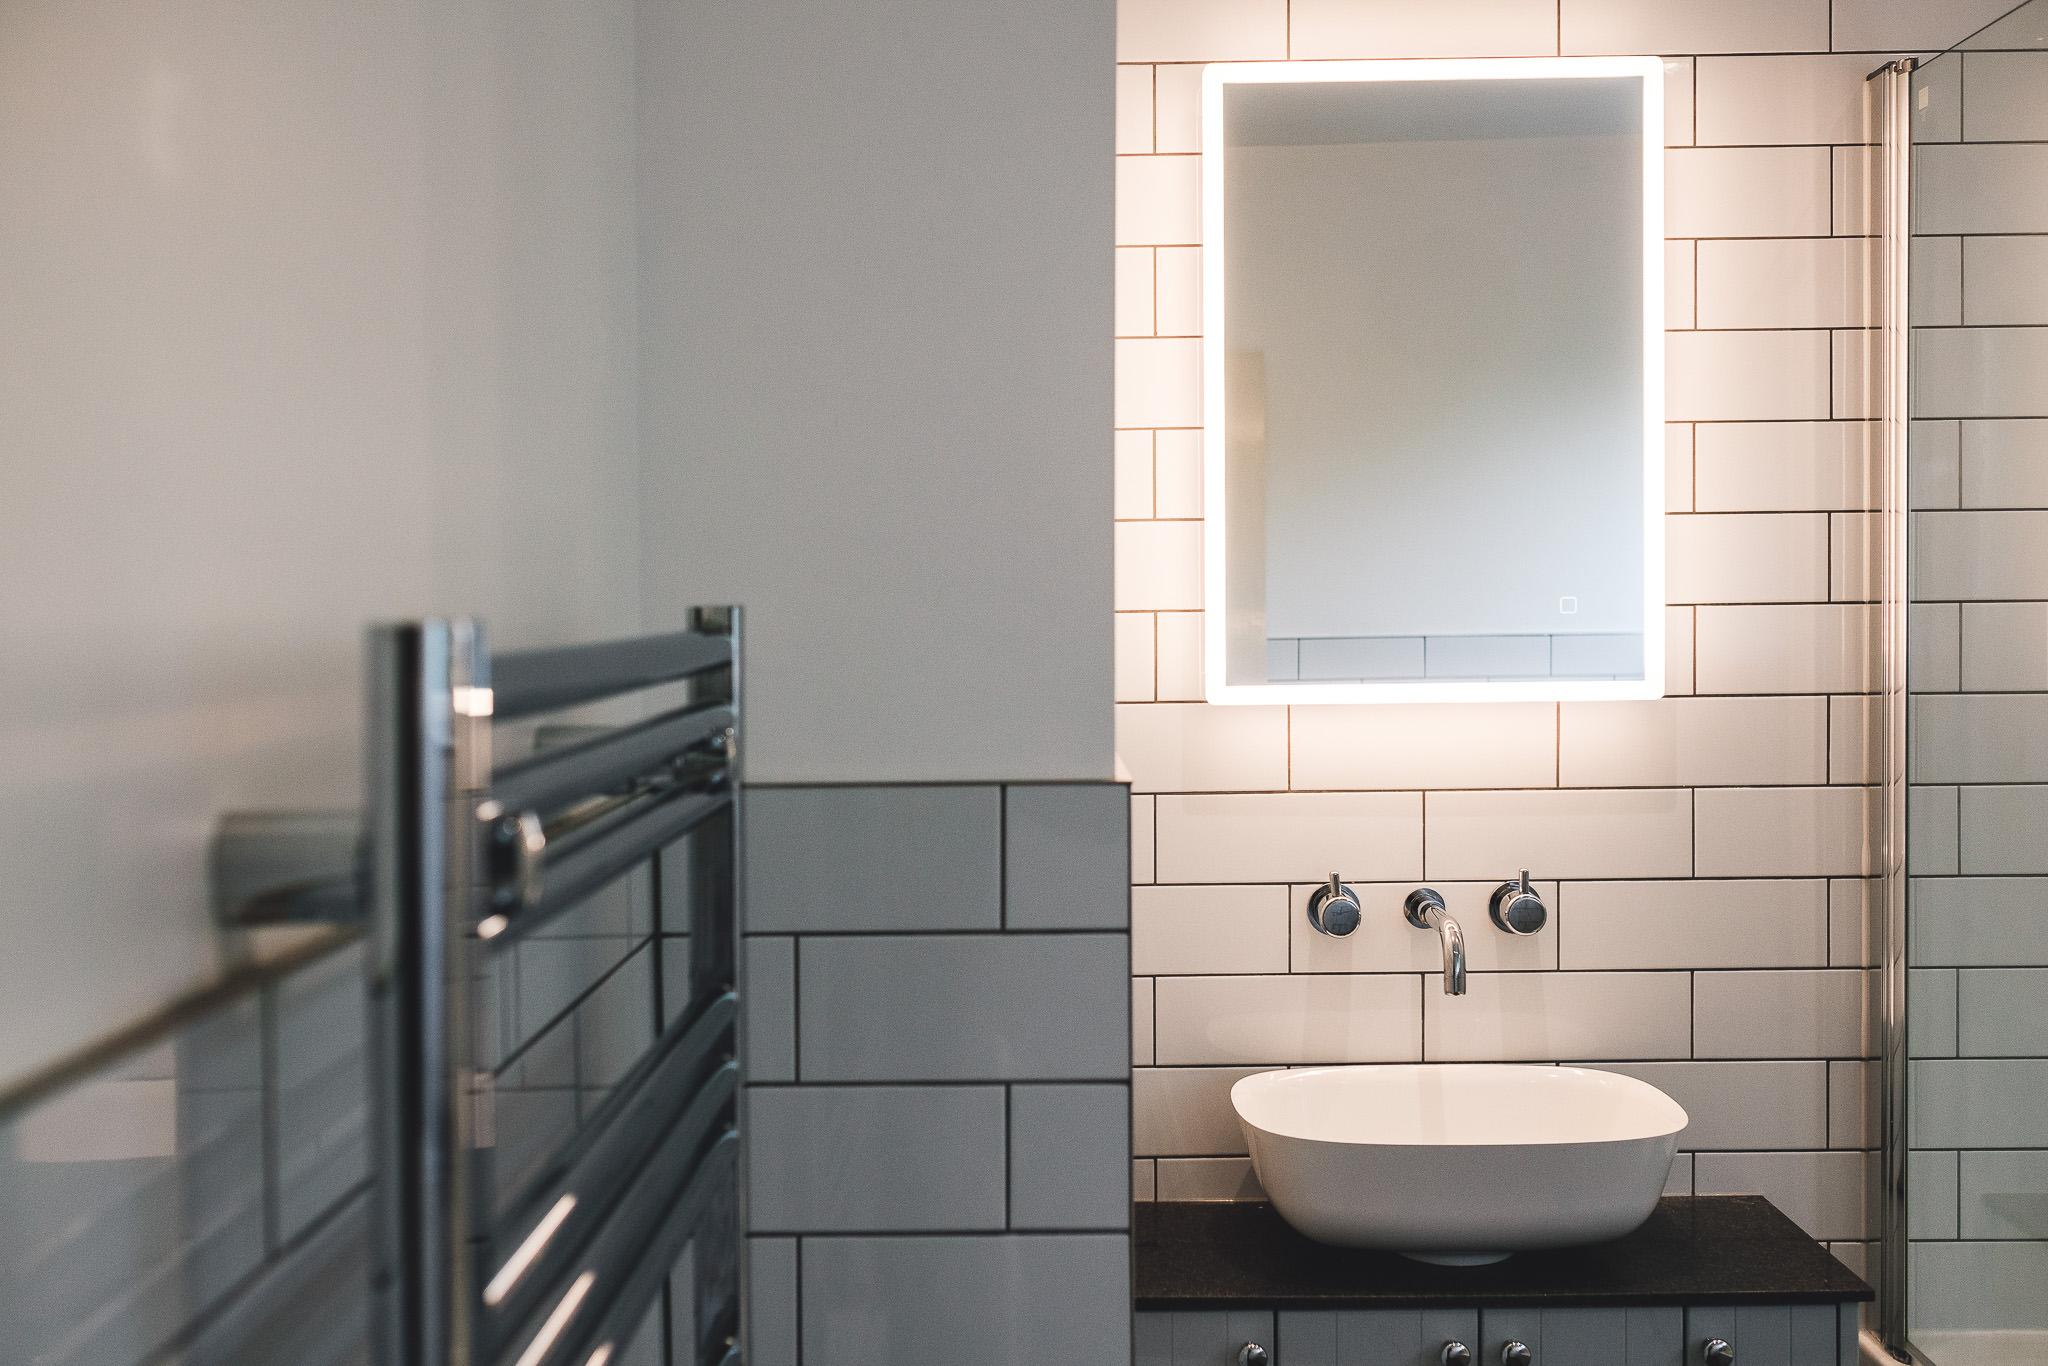 Sit on basin bowel with LED mirror above. Metro tiles on bathroom walls